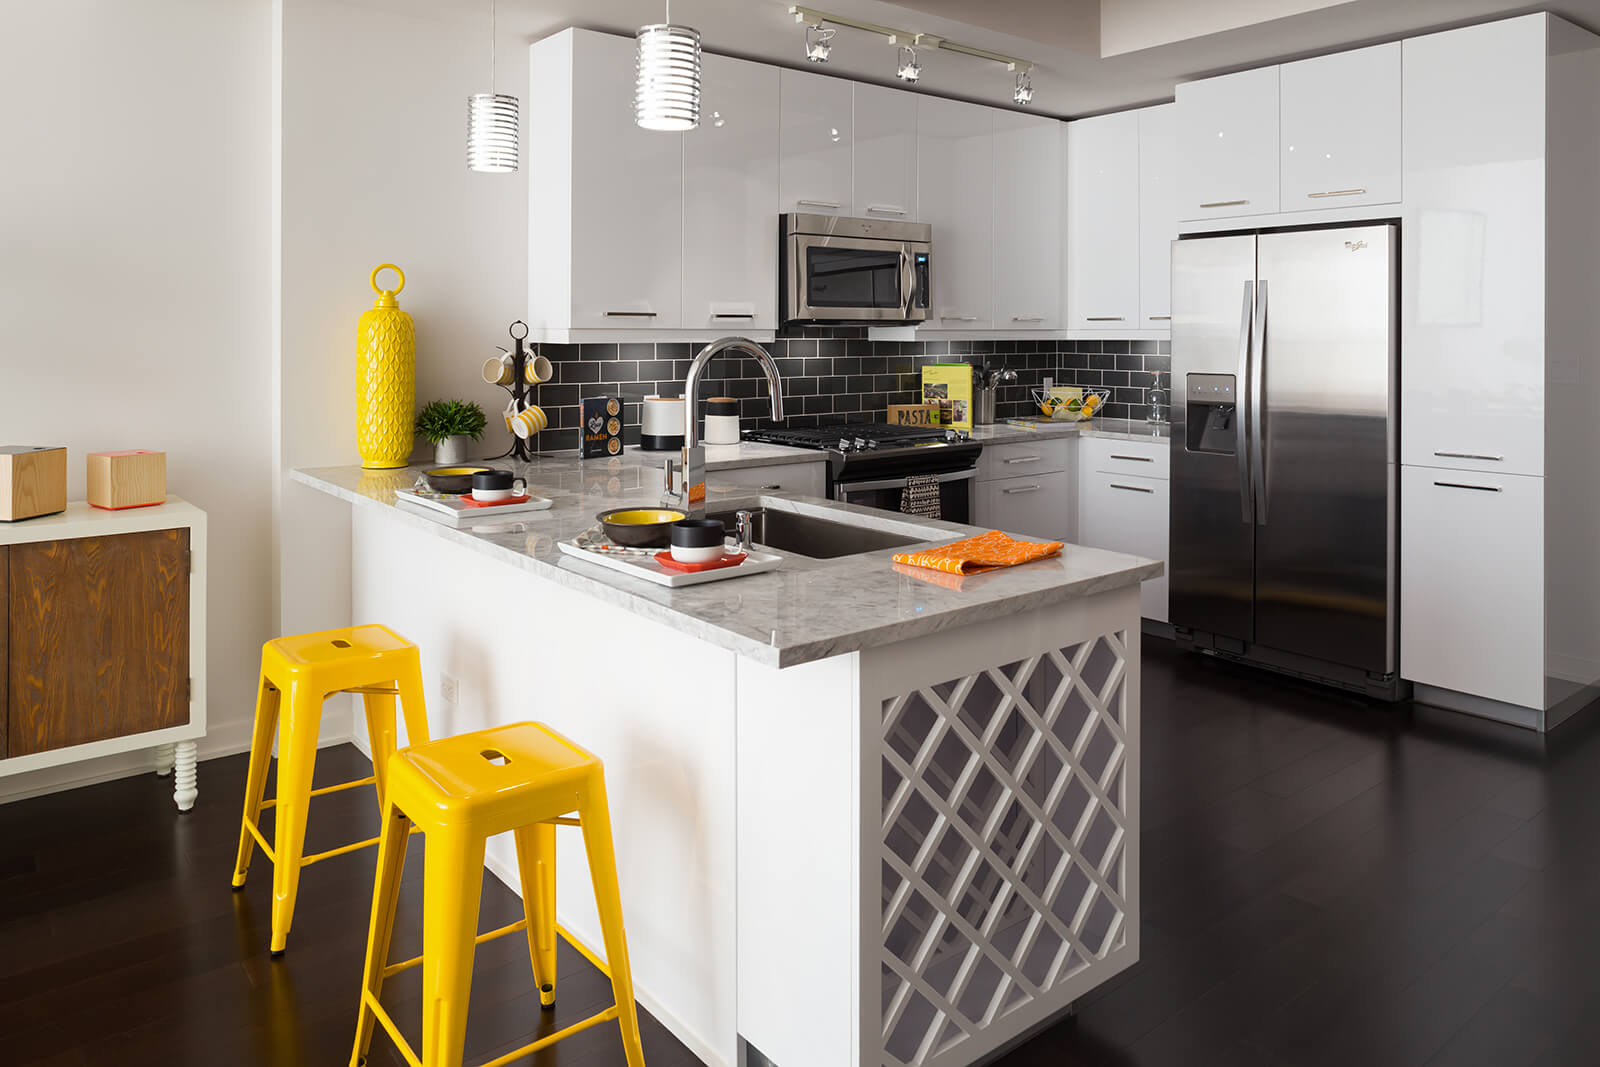 Chef-Inspired Kitchens with Stainless Steel Appliances at 1000 Speer by Windsor, 80204, CO